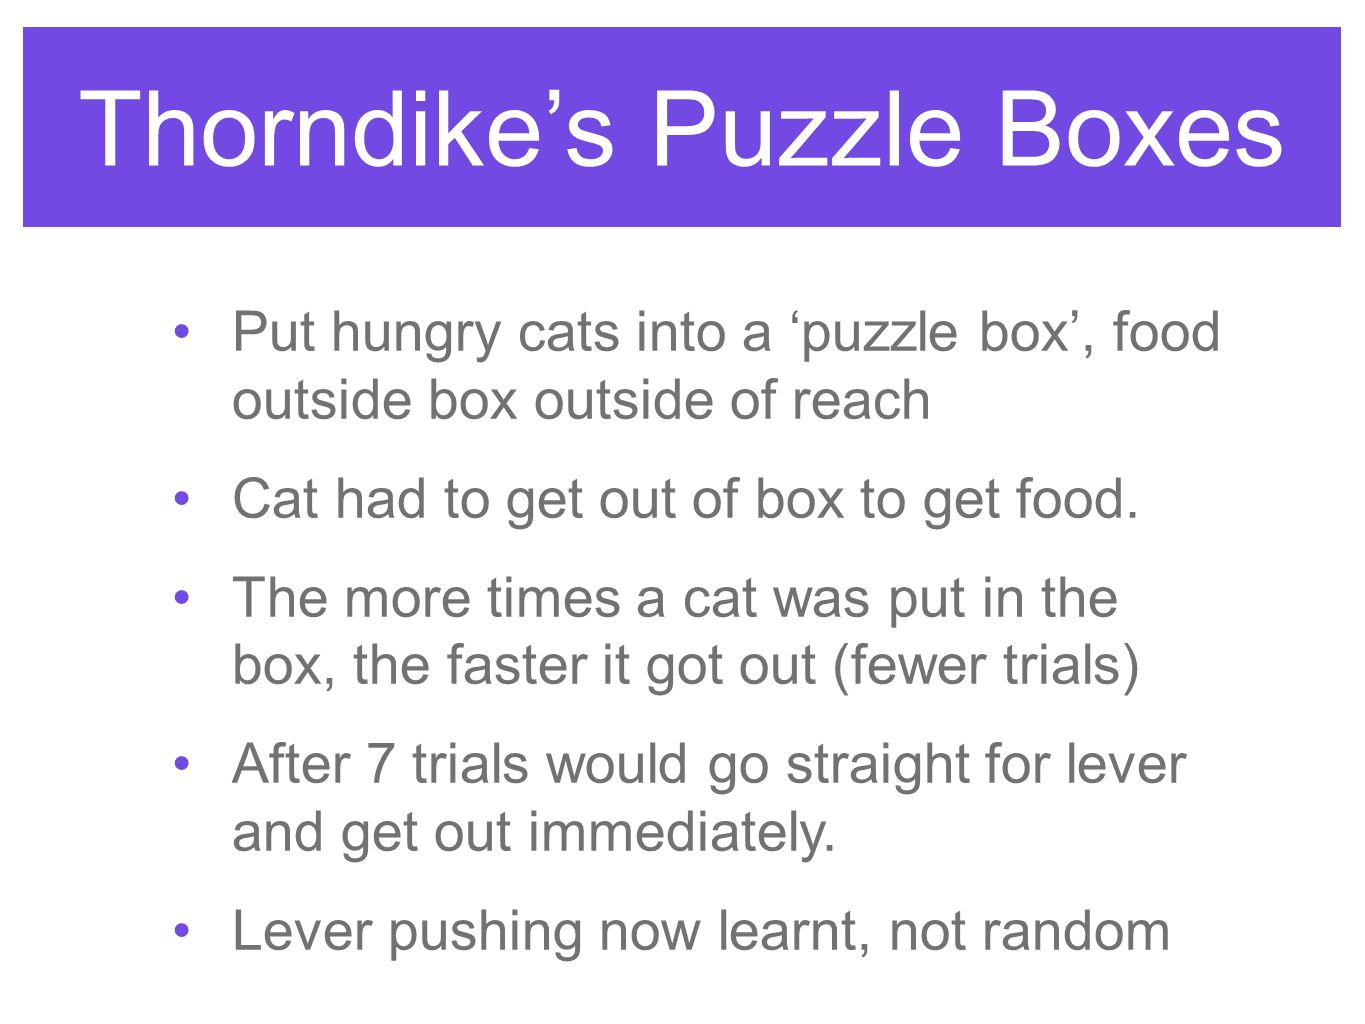 Thorndike's Puzzle Boxes Put hungry cats into a 'puzzle box', food outside box outside of reach Cat had to get out of box to get food.